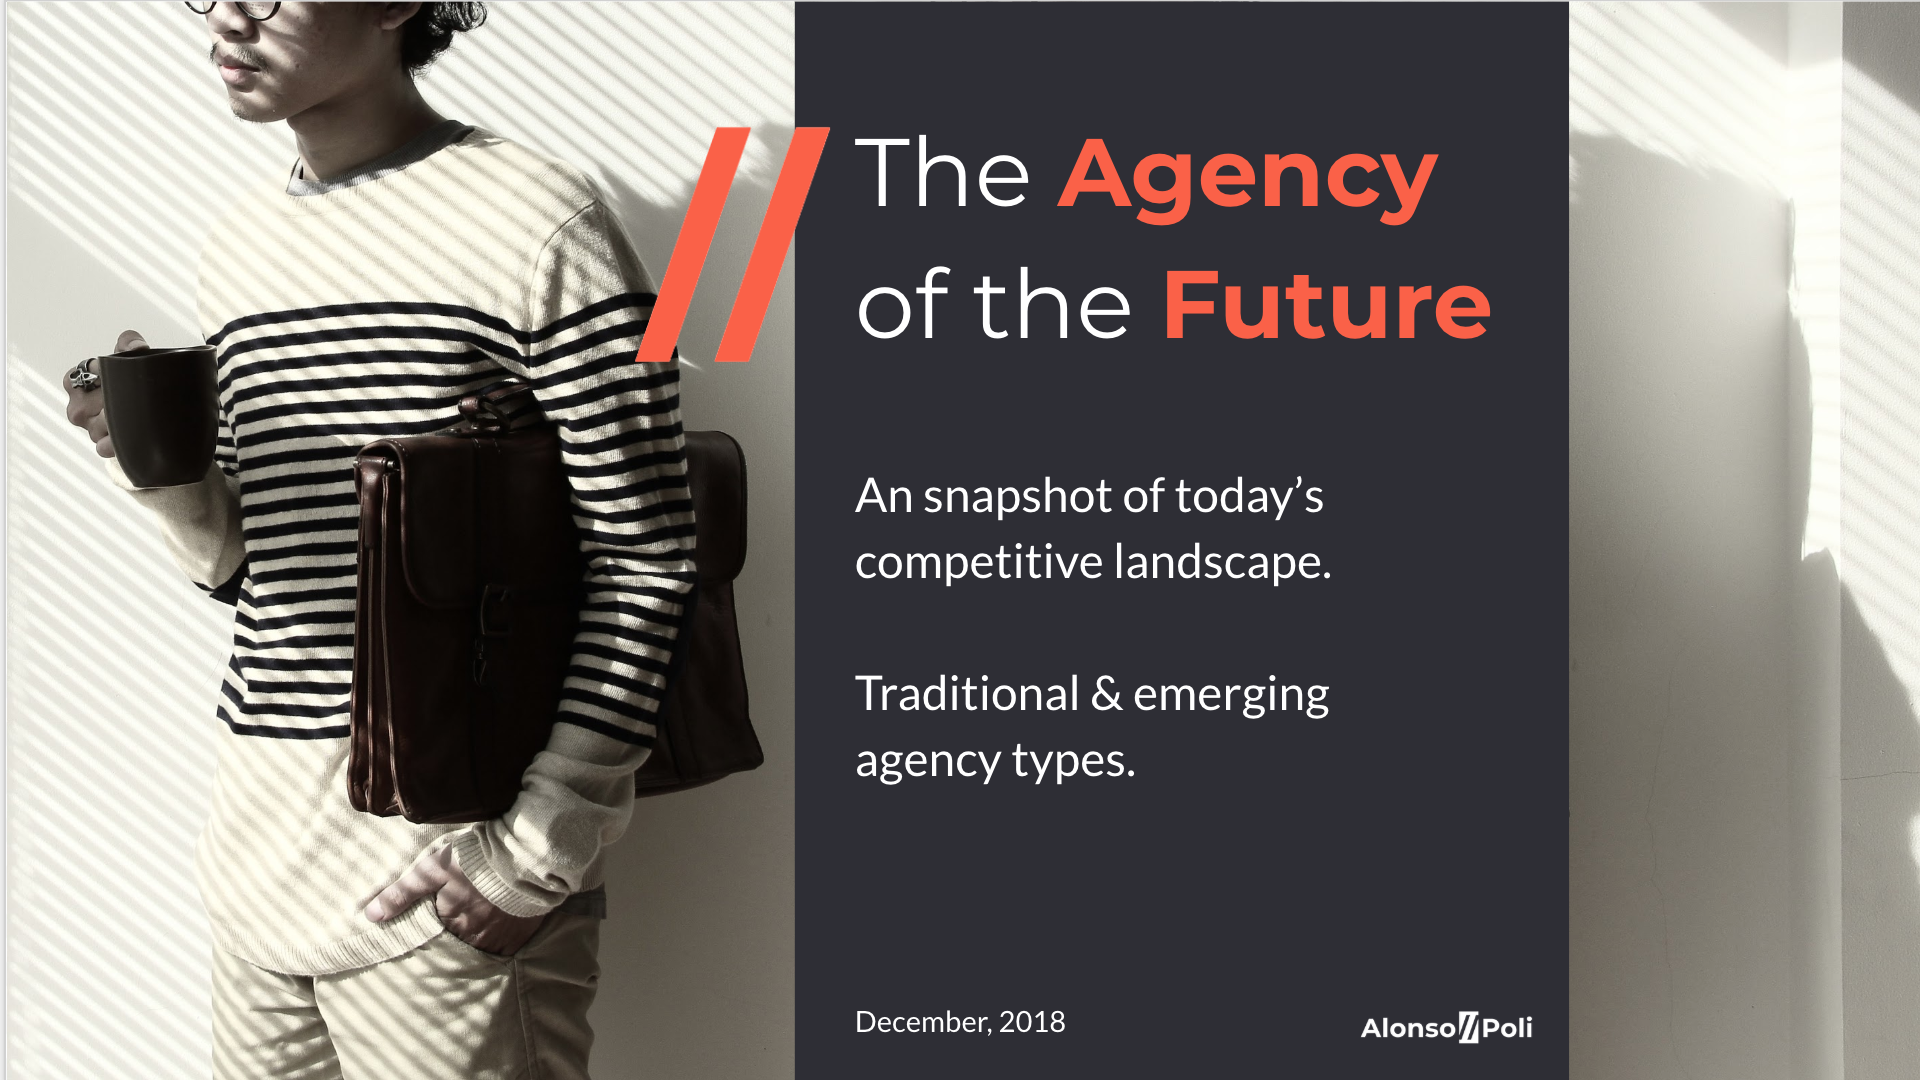 agency-of-the-future-agency-business-models.png